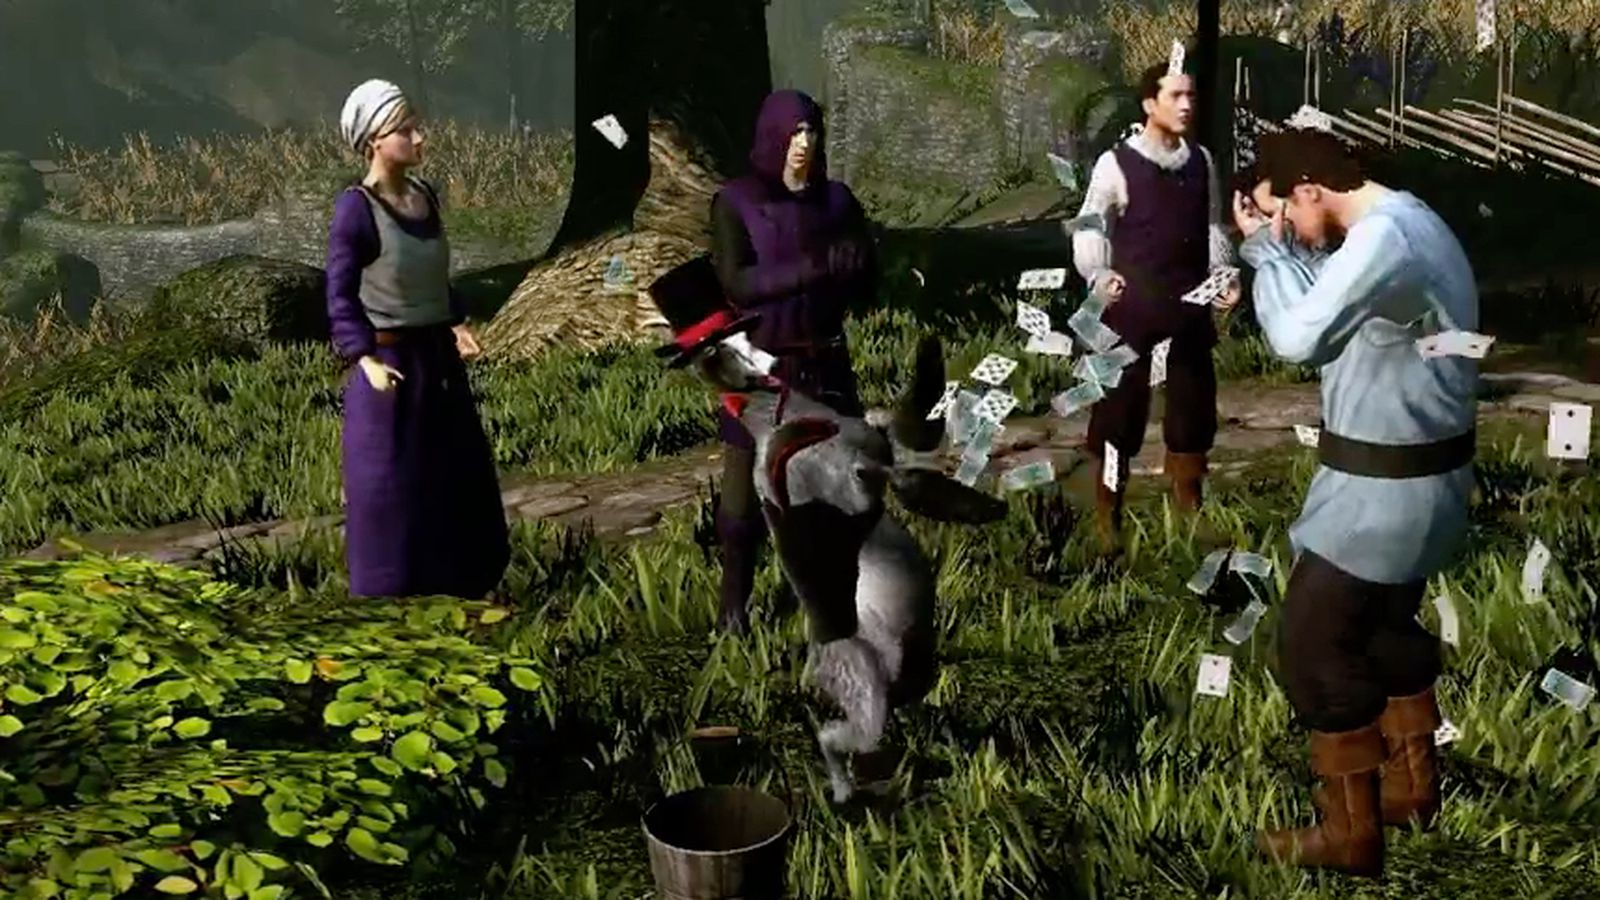 2014's Best Goat Simulator Is Now The Craziest 'World Of